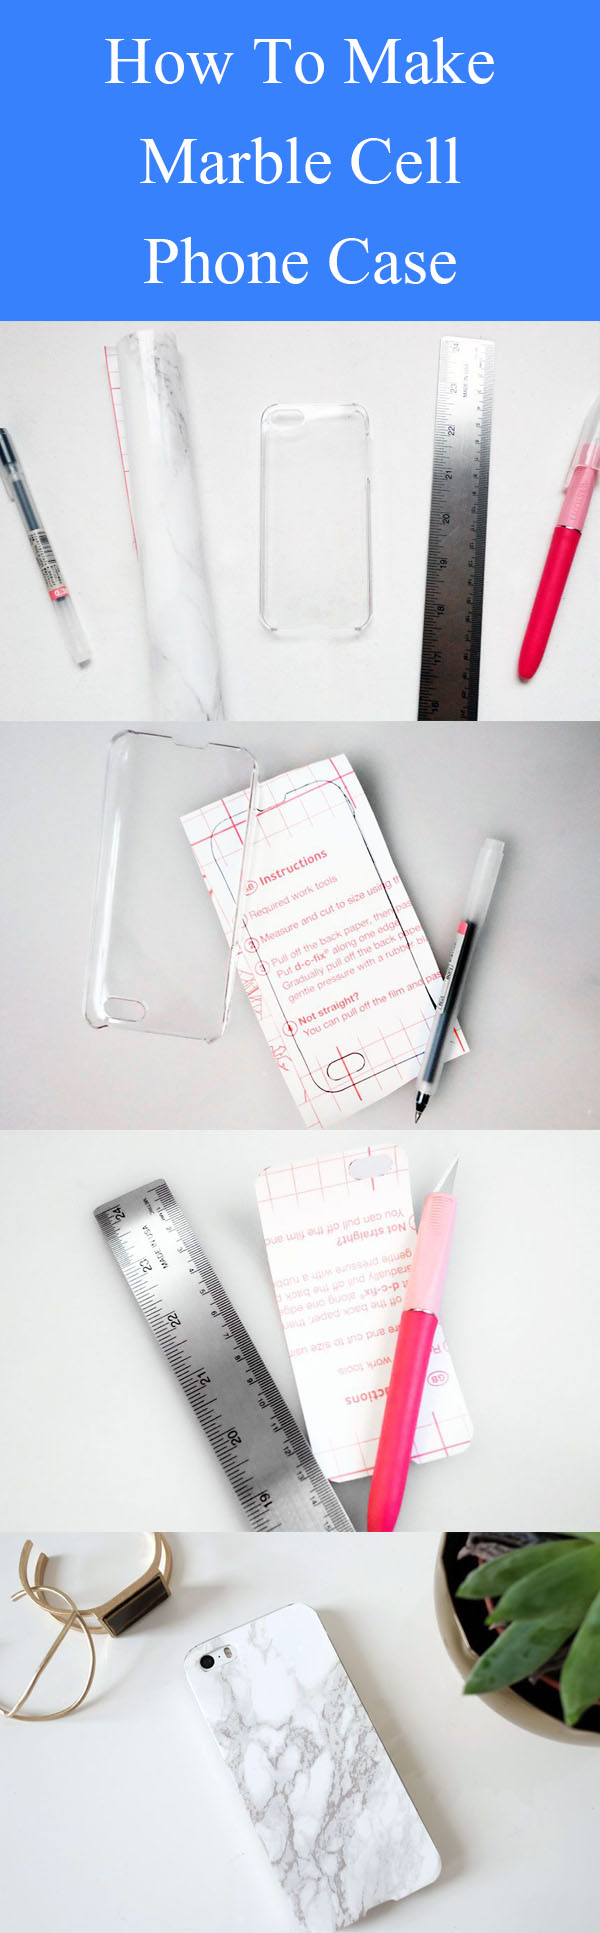 DIY Marble Cell Phone Case